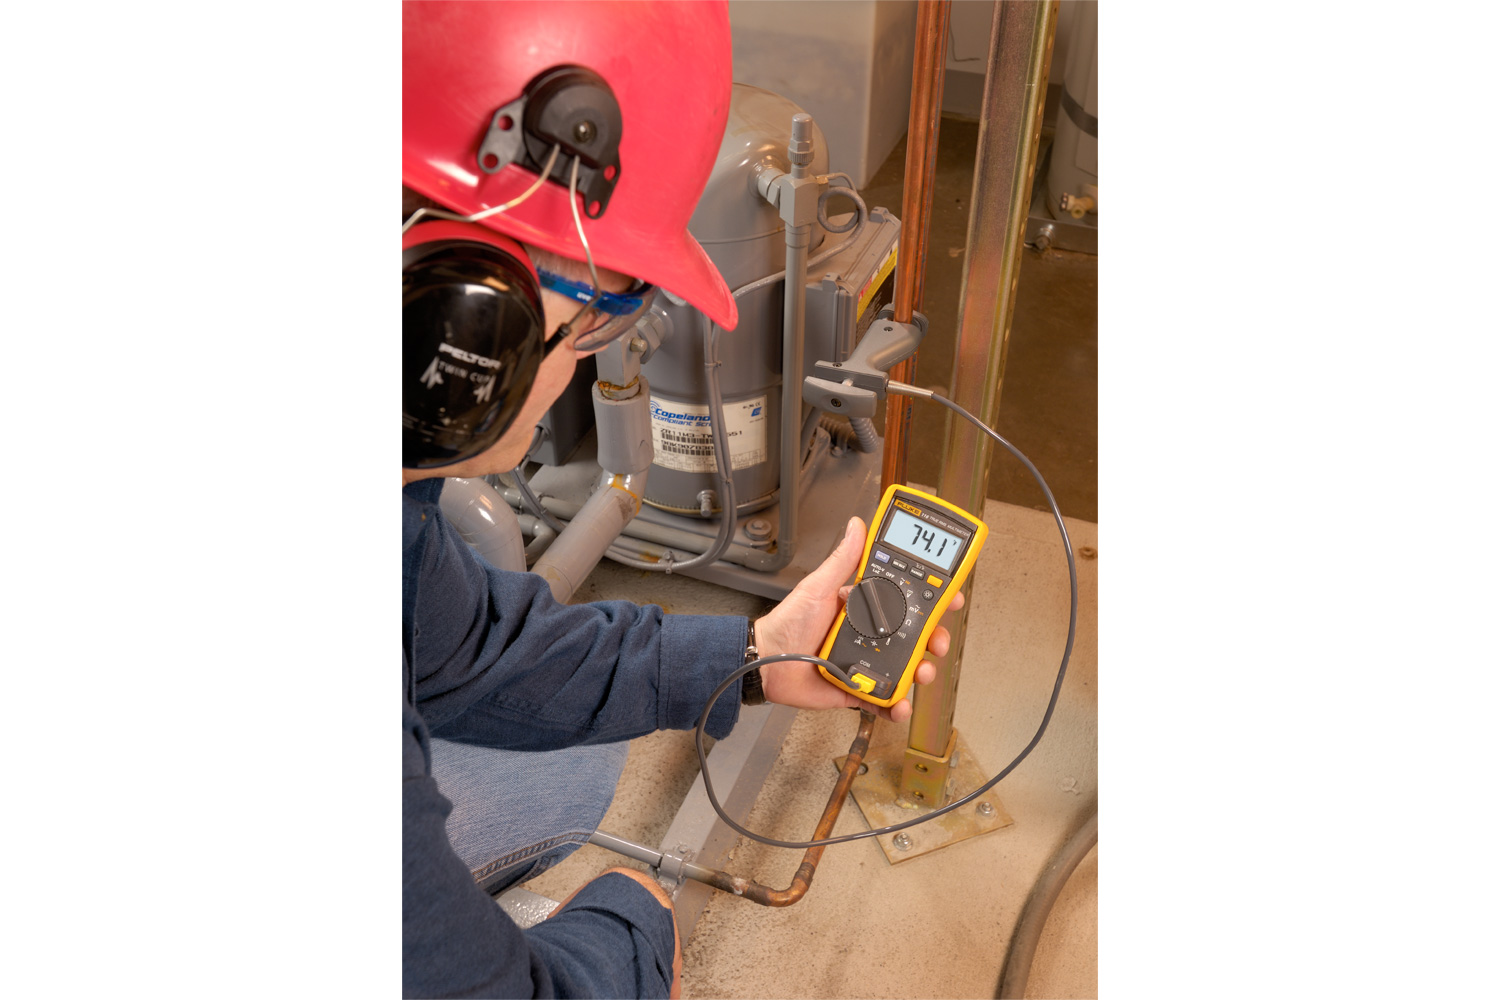 Fluke 116 Digital Multimeter For Hvac Service Wiring Problems Why You Need To Own A Meter Electrical Online